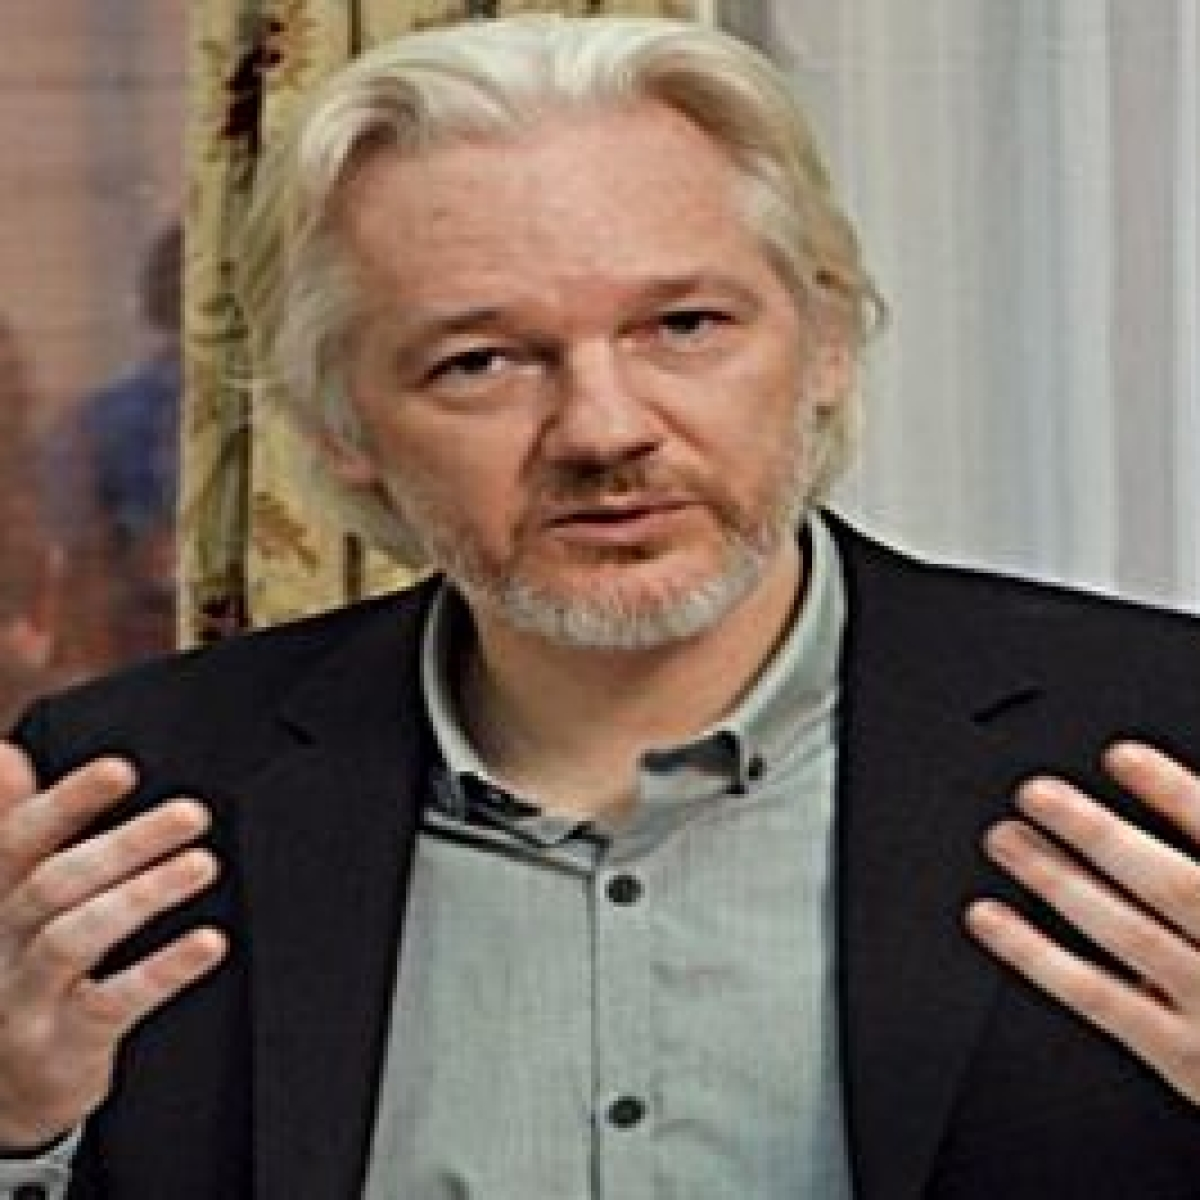 US accuses Julian Assange of endangering sources